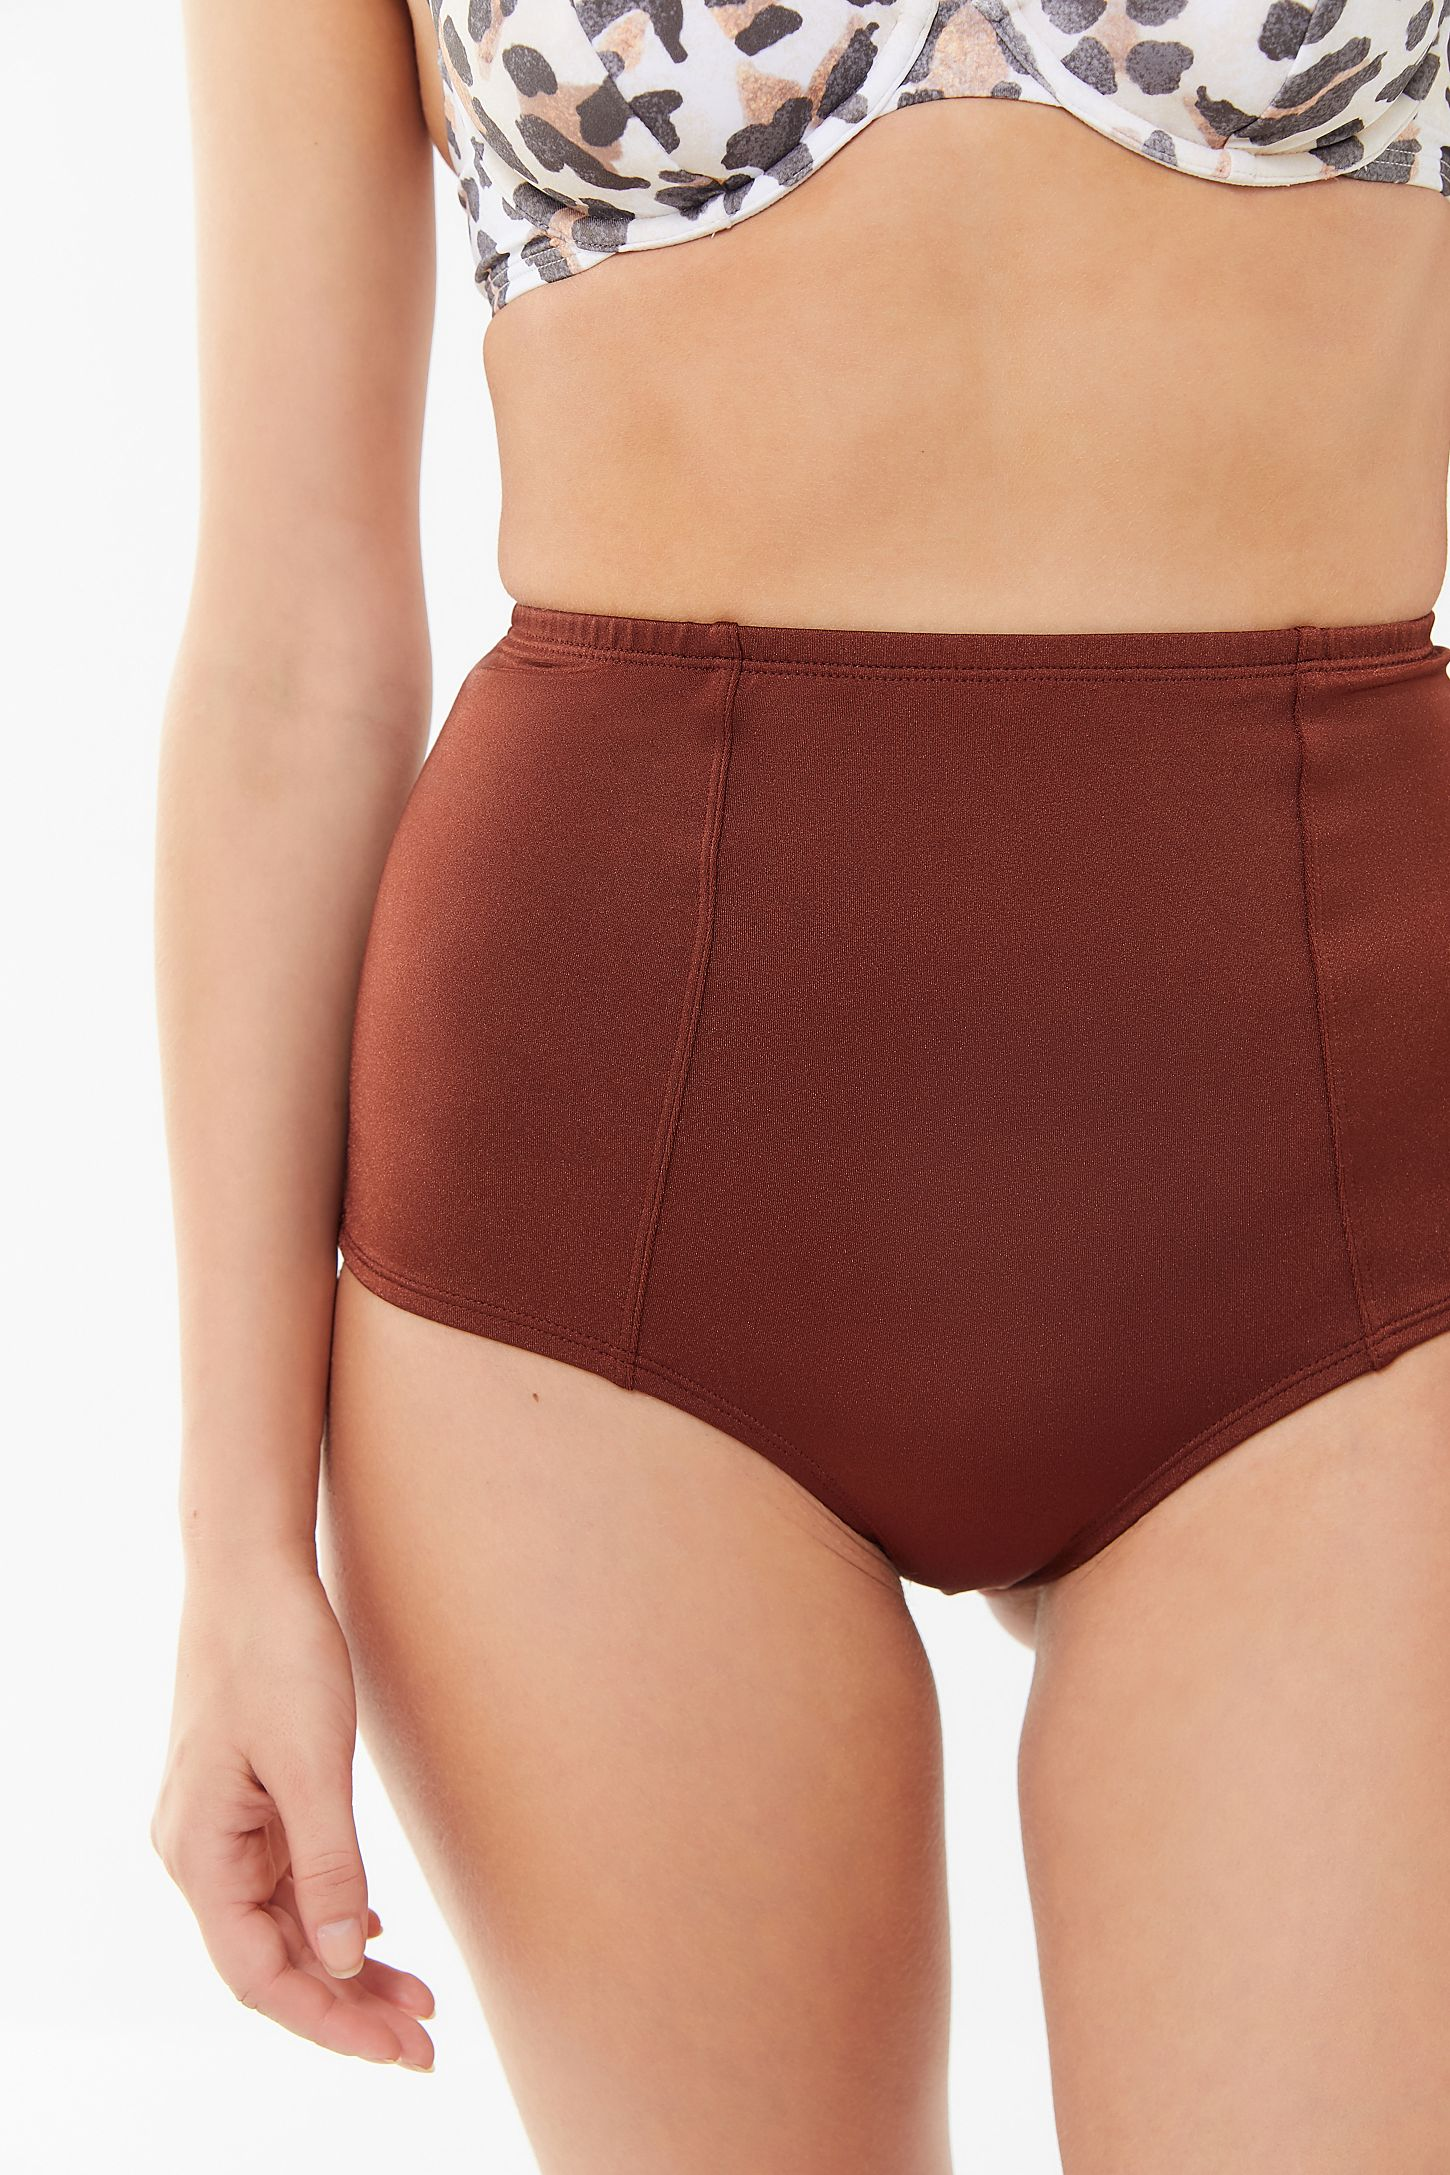 66aea1e329a Slide View: 4: Out From Under Shimmer Strappy Back High-Waisted Bikini  Bottom